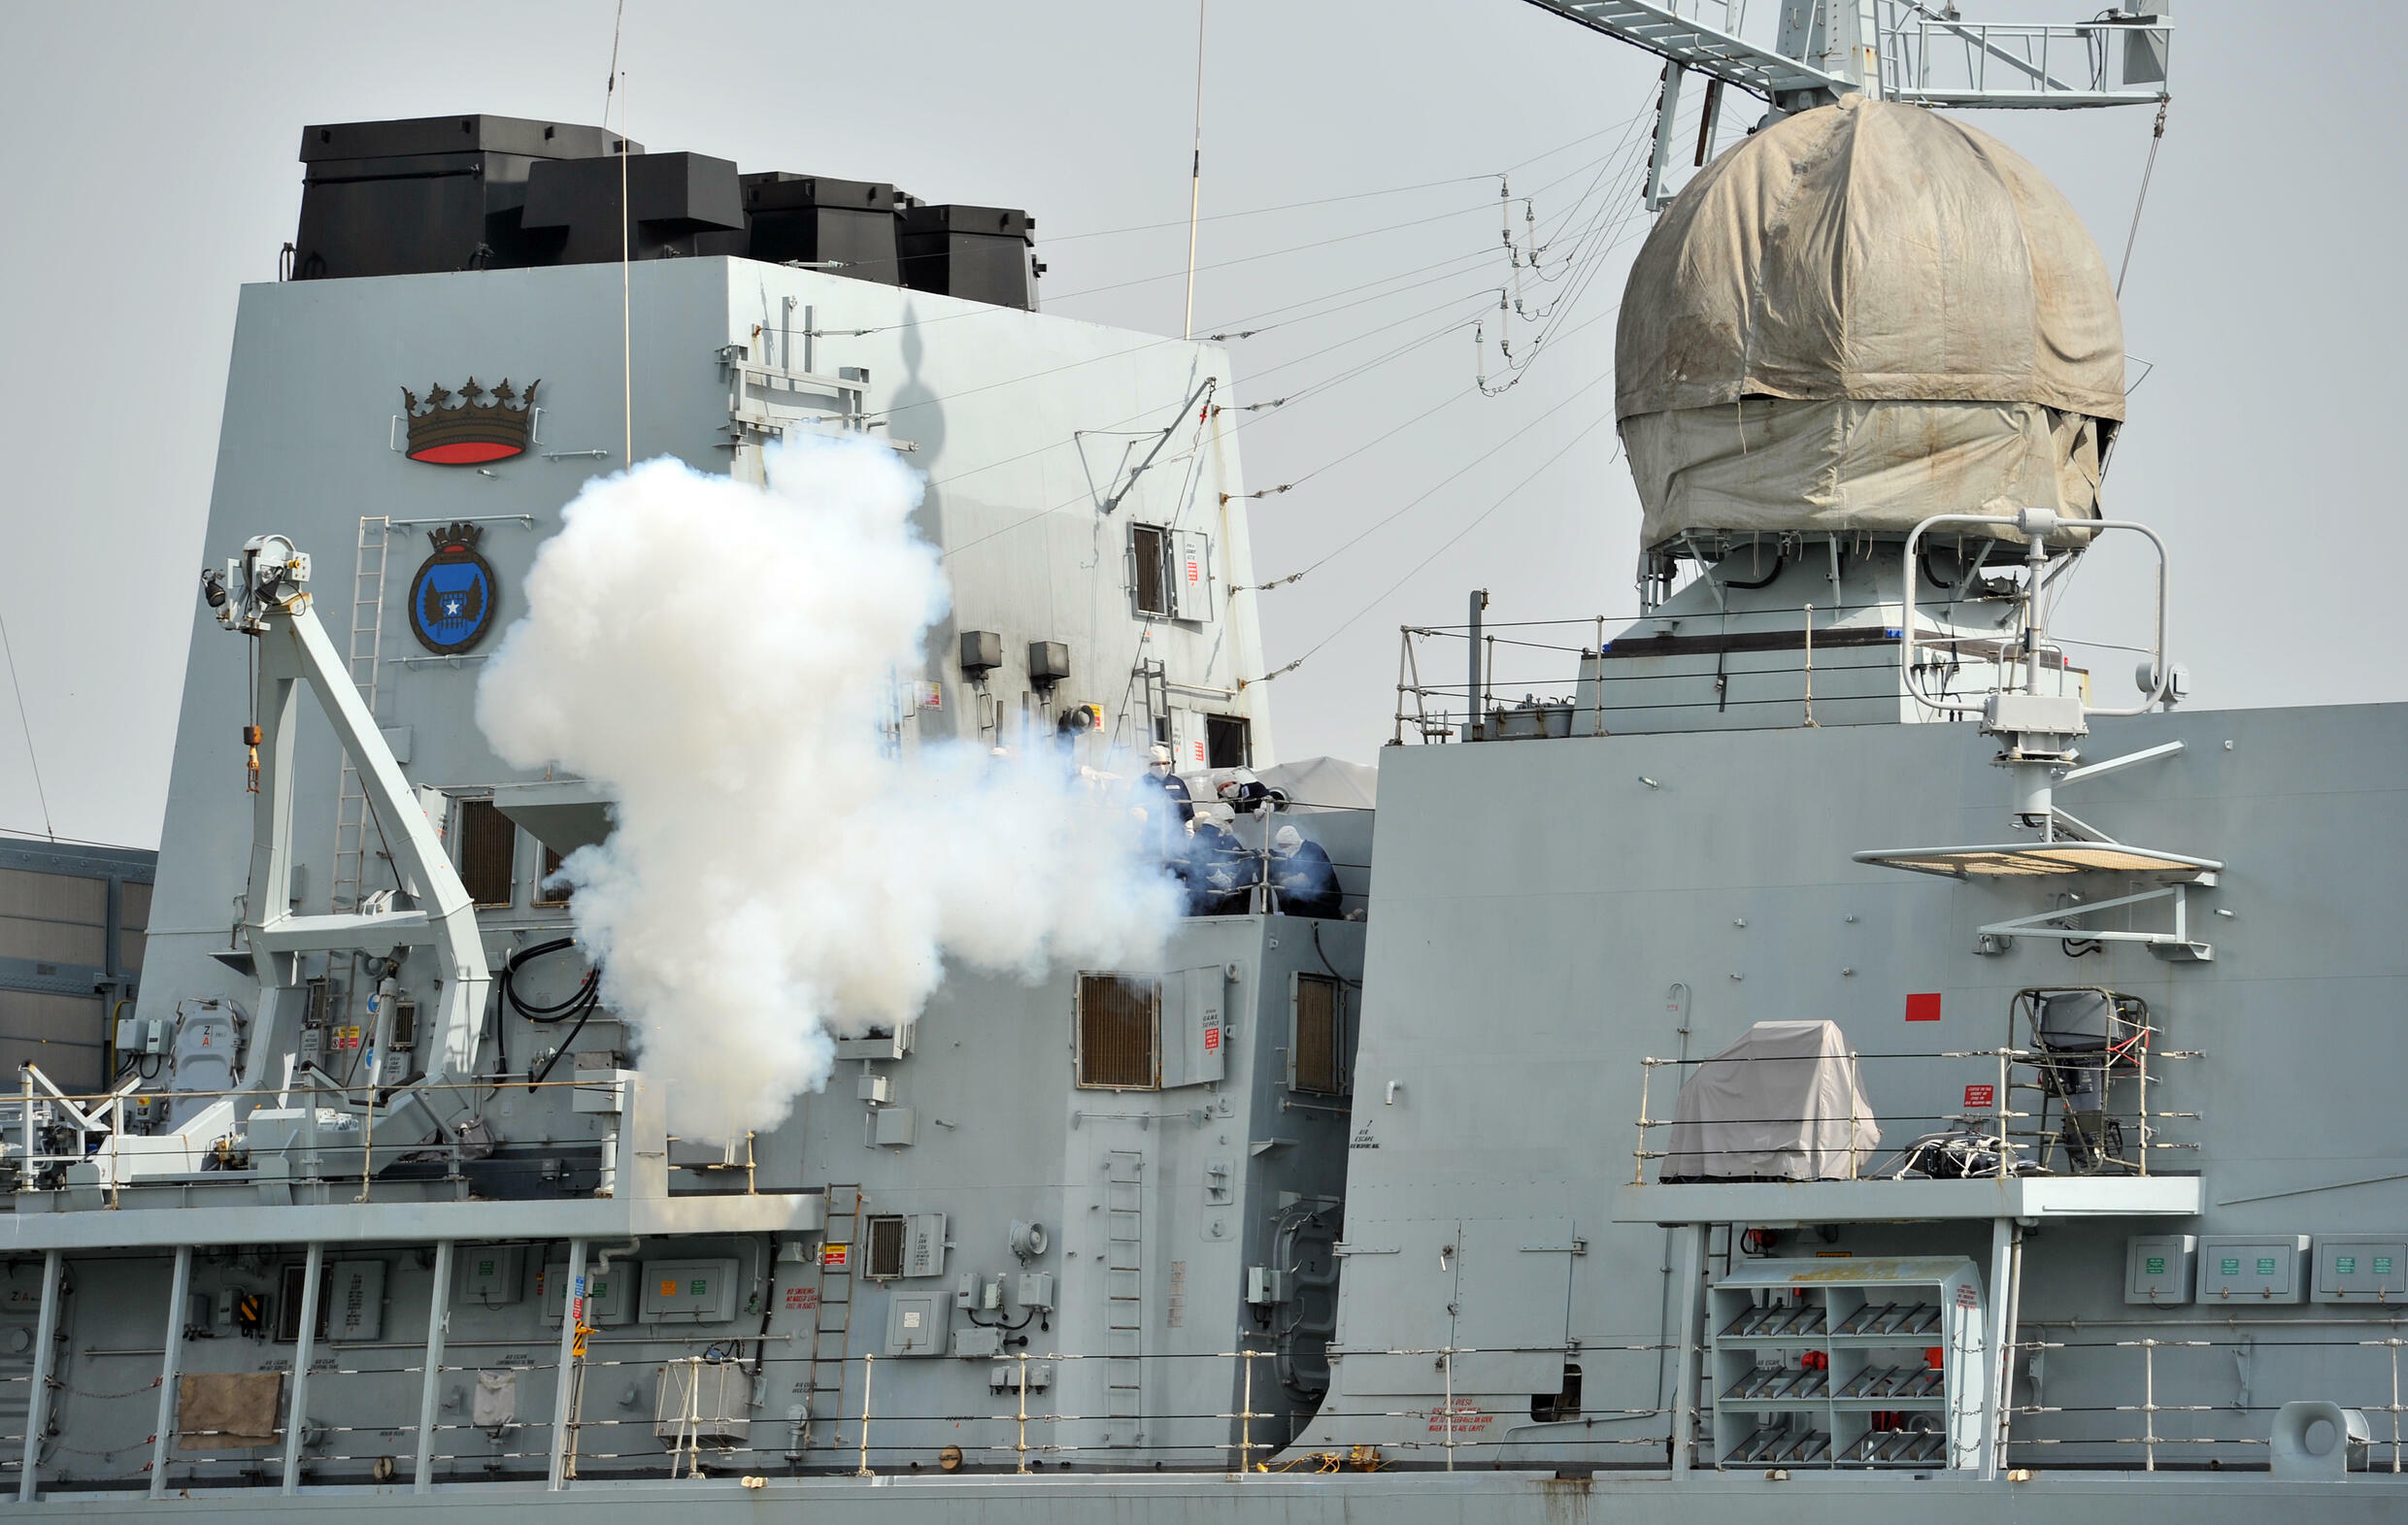 HMS Richmond is a frigate deployed with Britain's aircraft carrier strike group